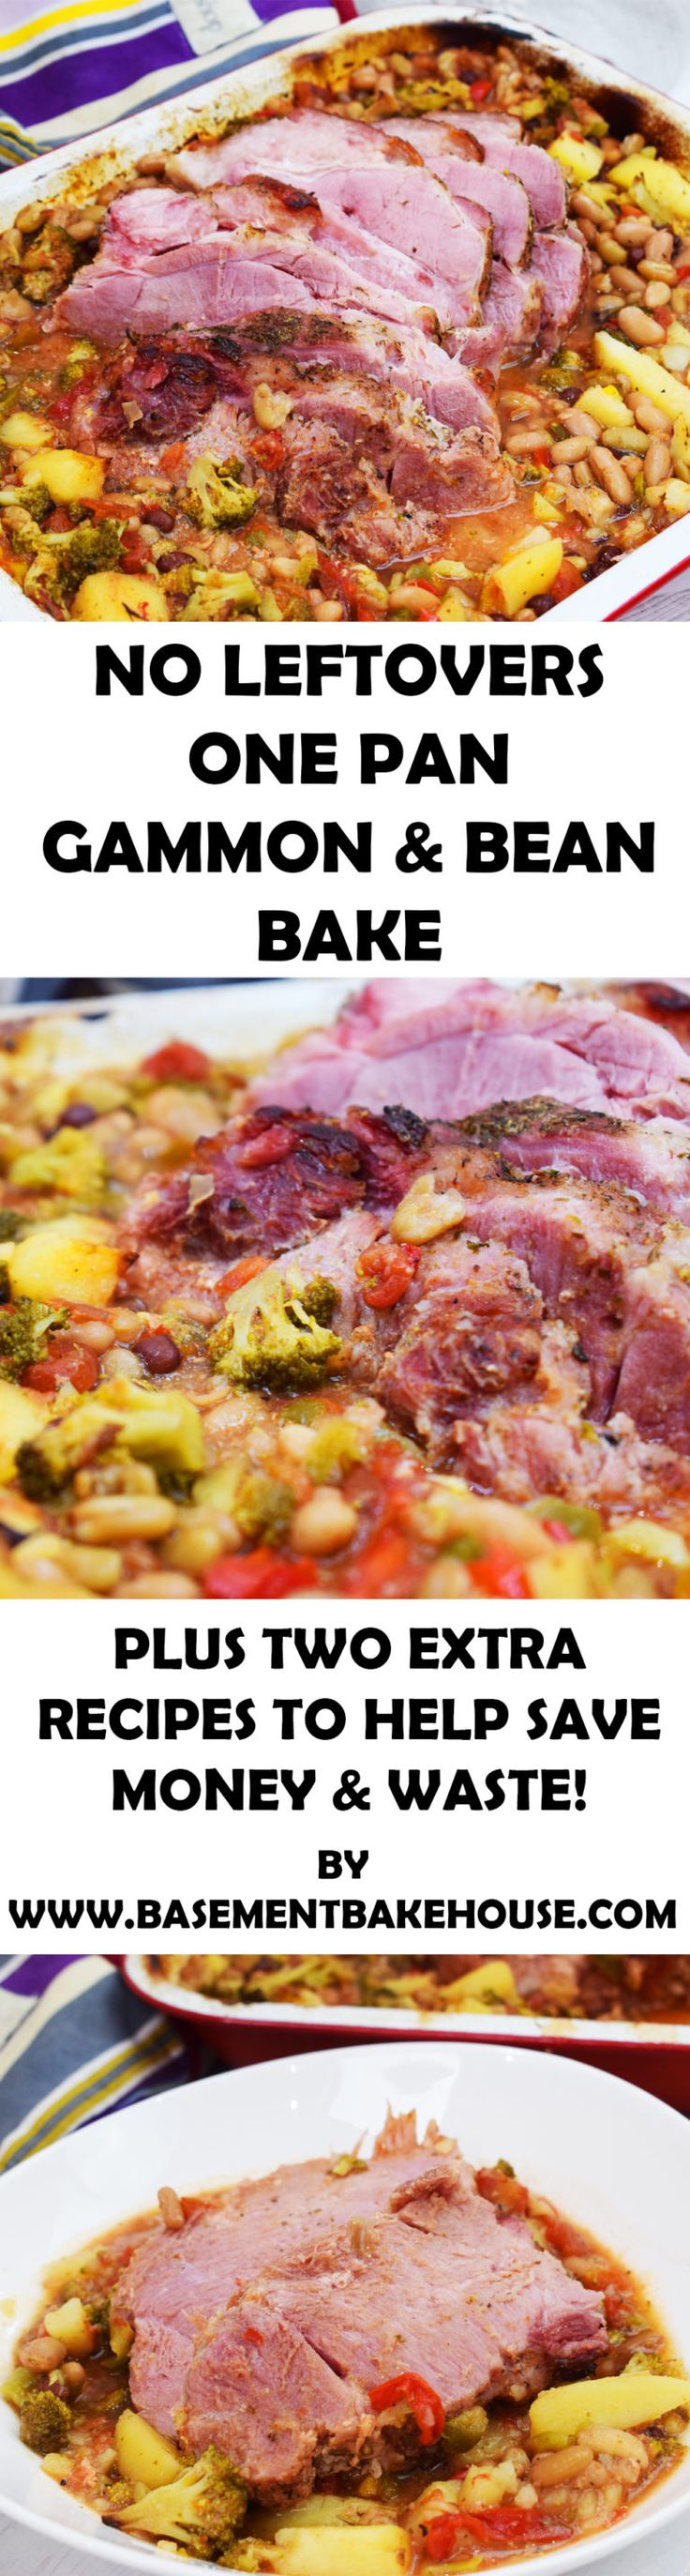 Make this delicious 'No Waste One Pan Gammon & Bean Bake' and reduce food waste with TWO extra recipes to use your leftovers! Perfect for Slimming World using Iceland's range of delicious frozen meat and veg #ad